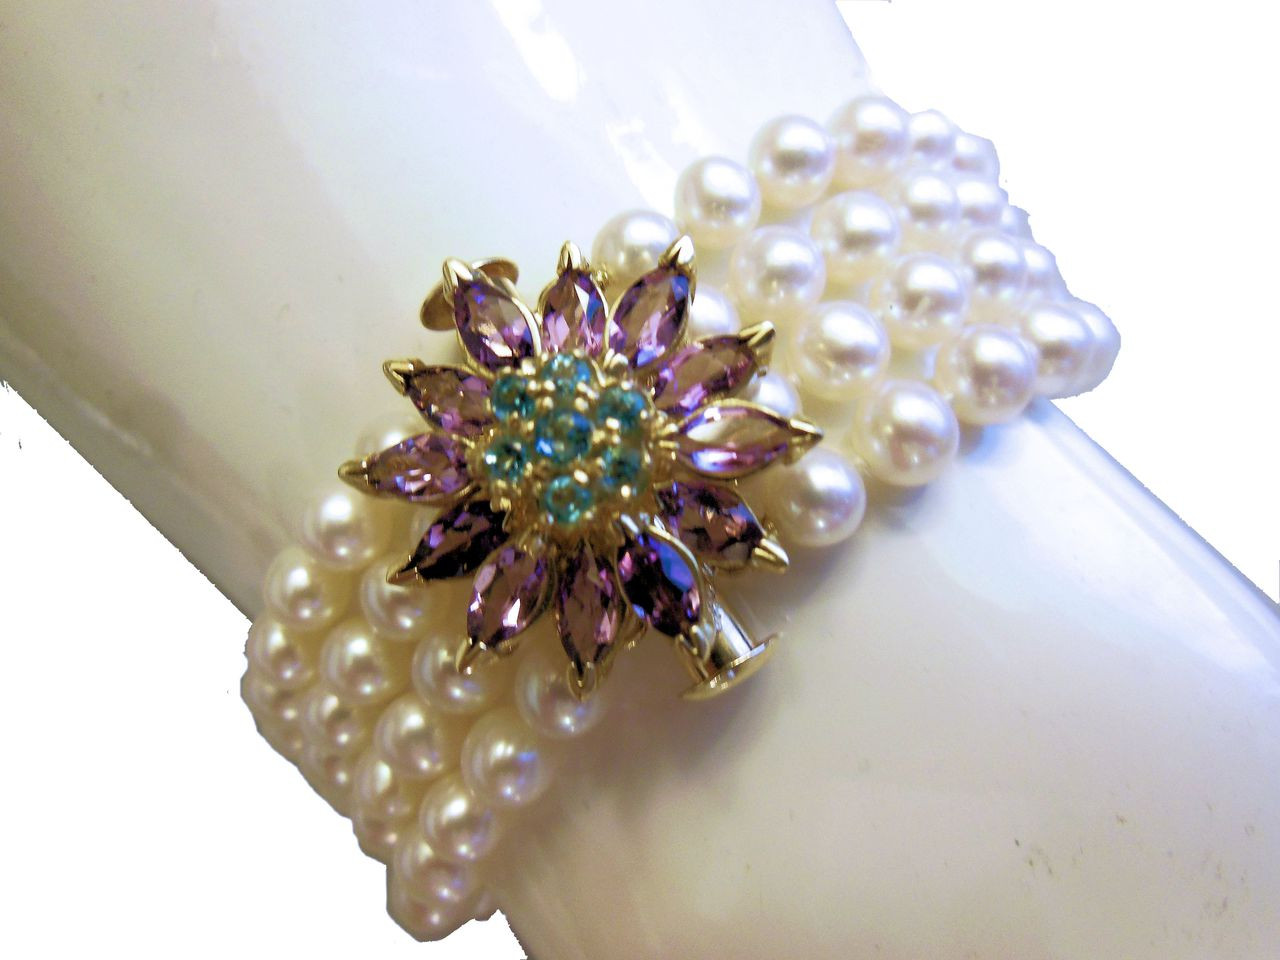 Daisy in Amethyst and Blue Topaz on pearls-Bracelet.